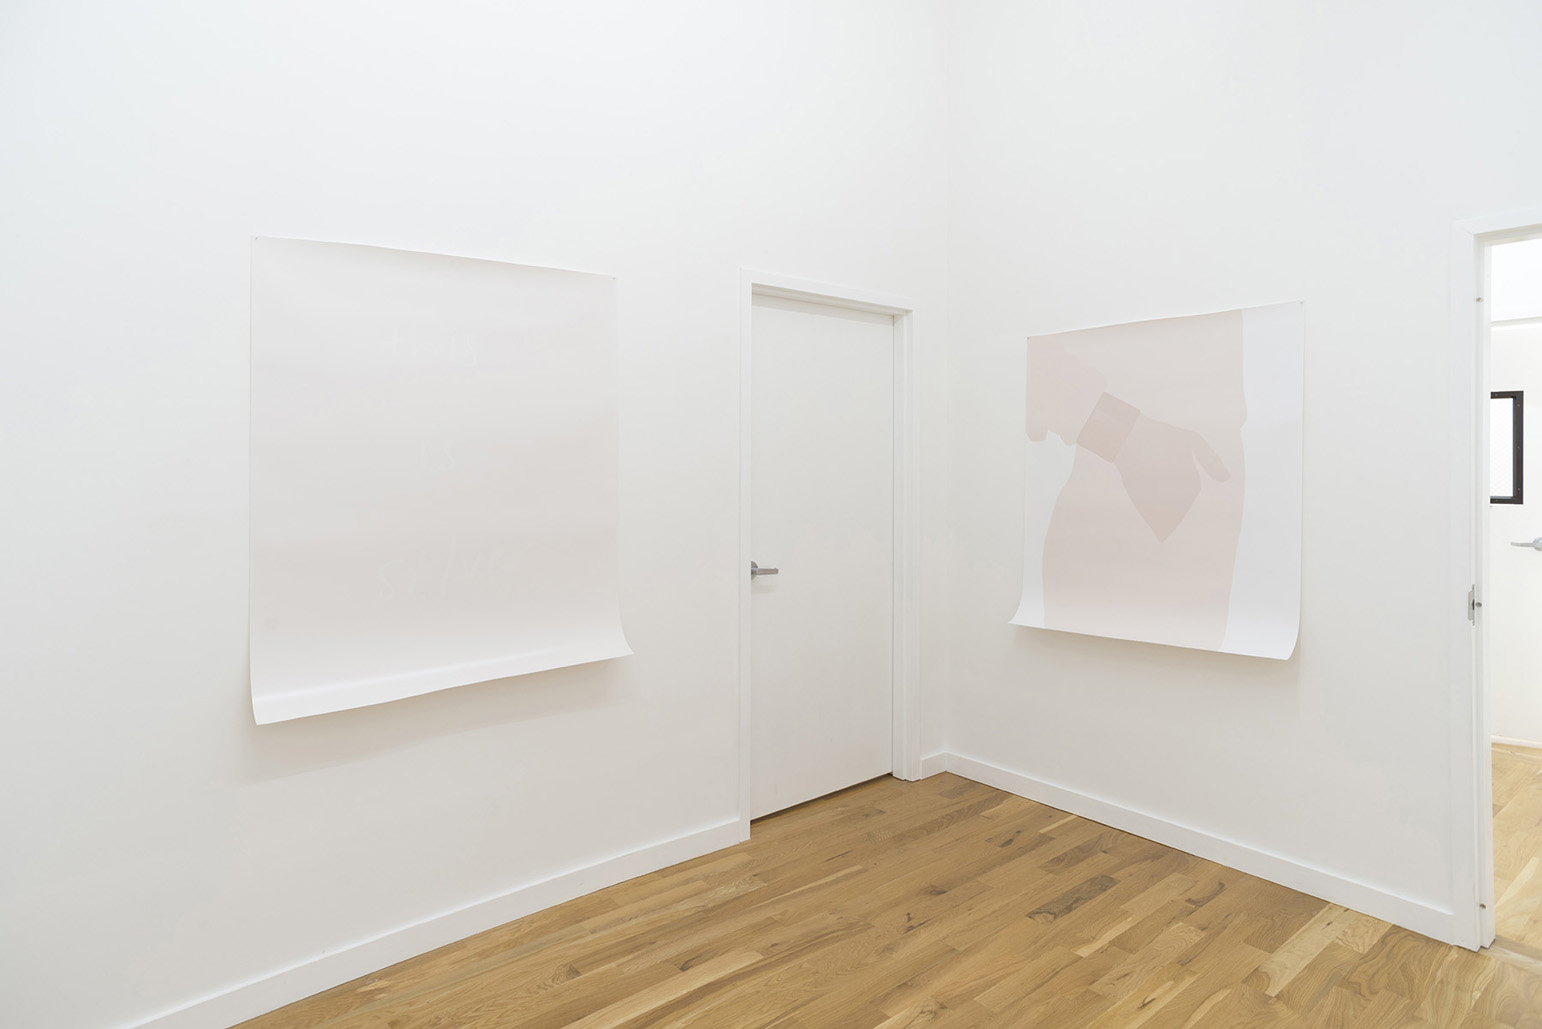 Mirror Lamp Hammer, Installation view